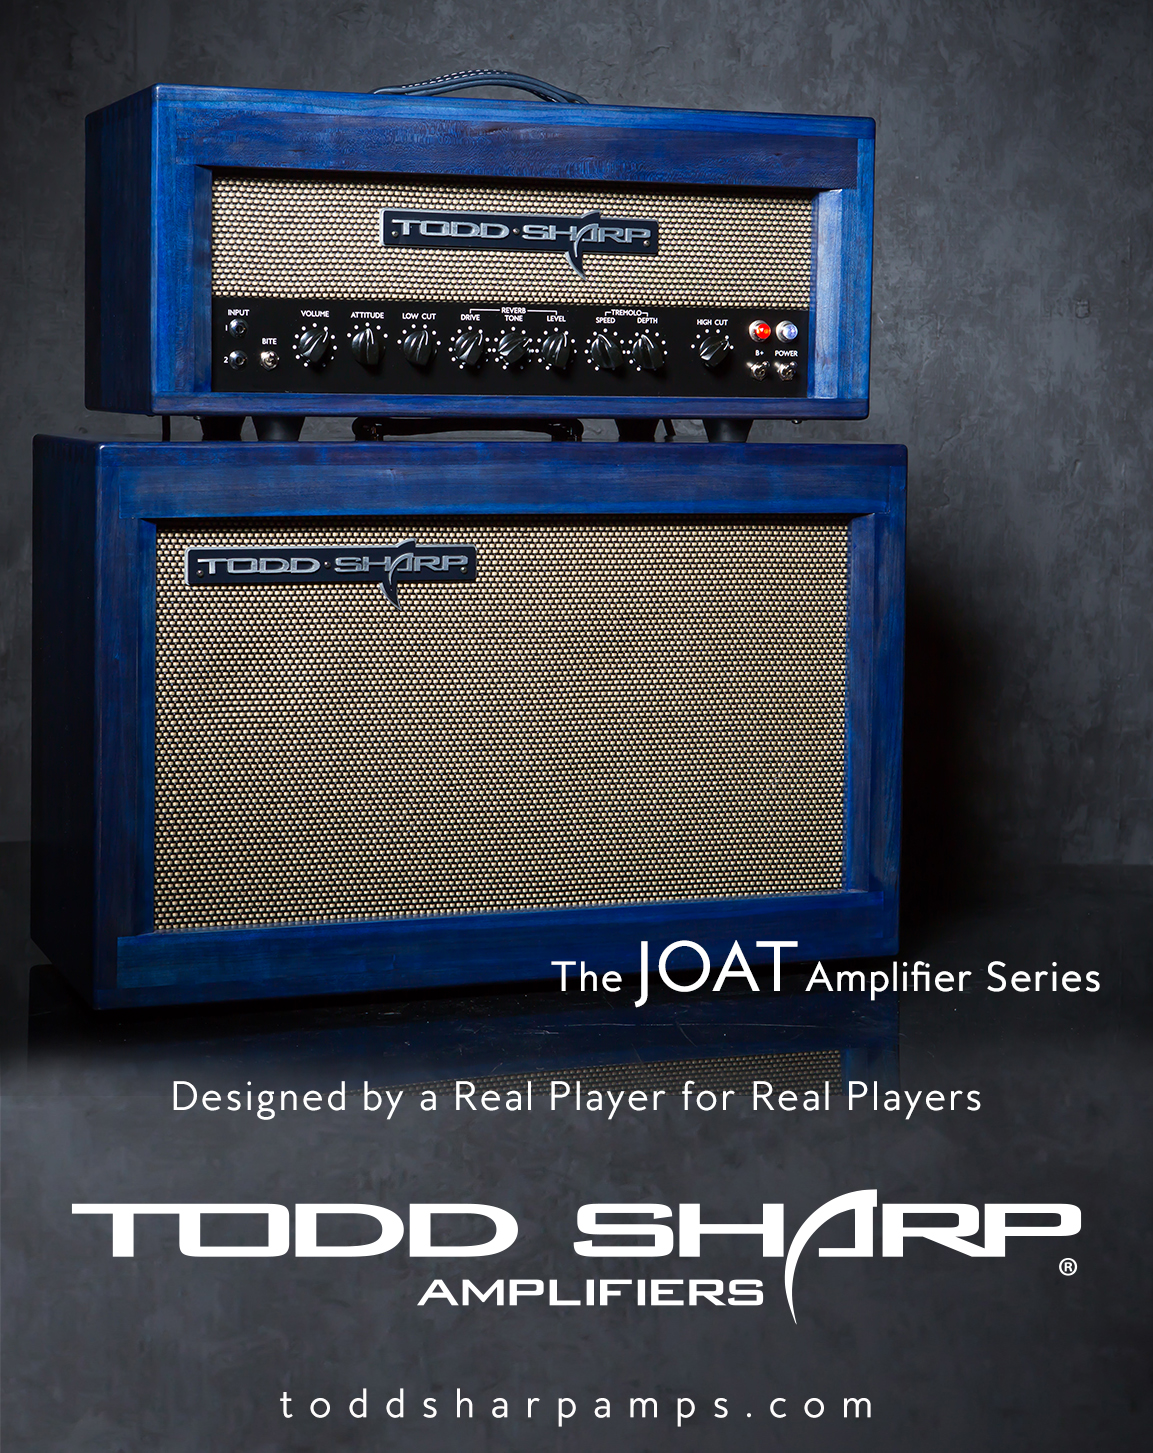 todd sharp amp